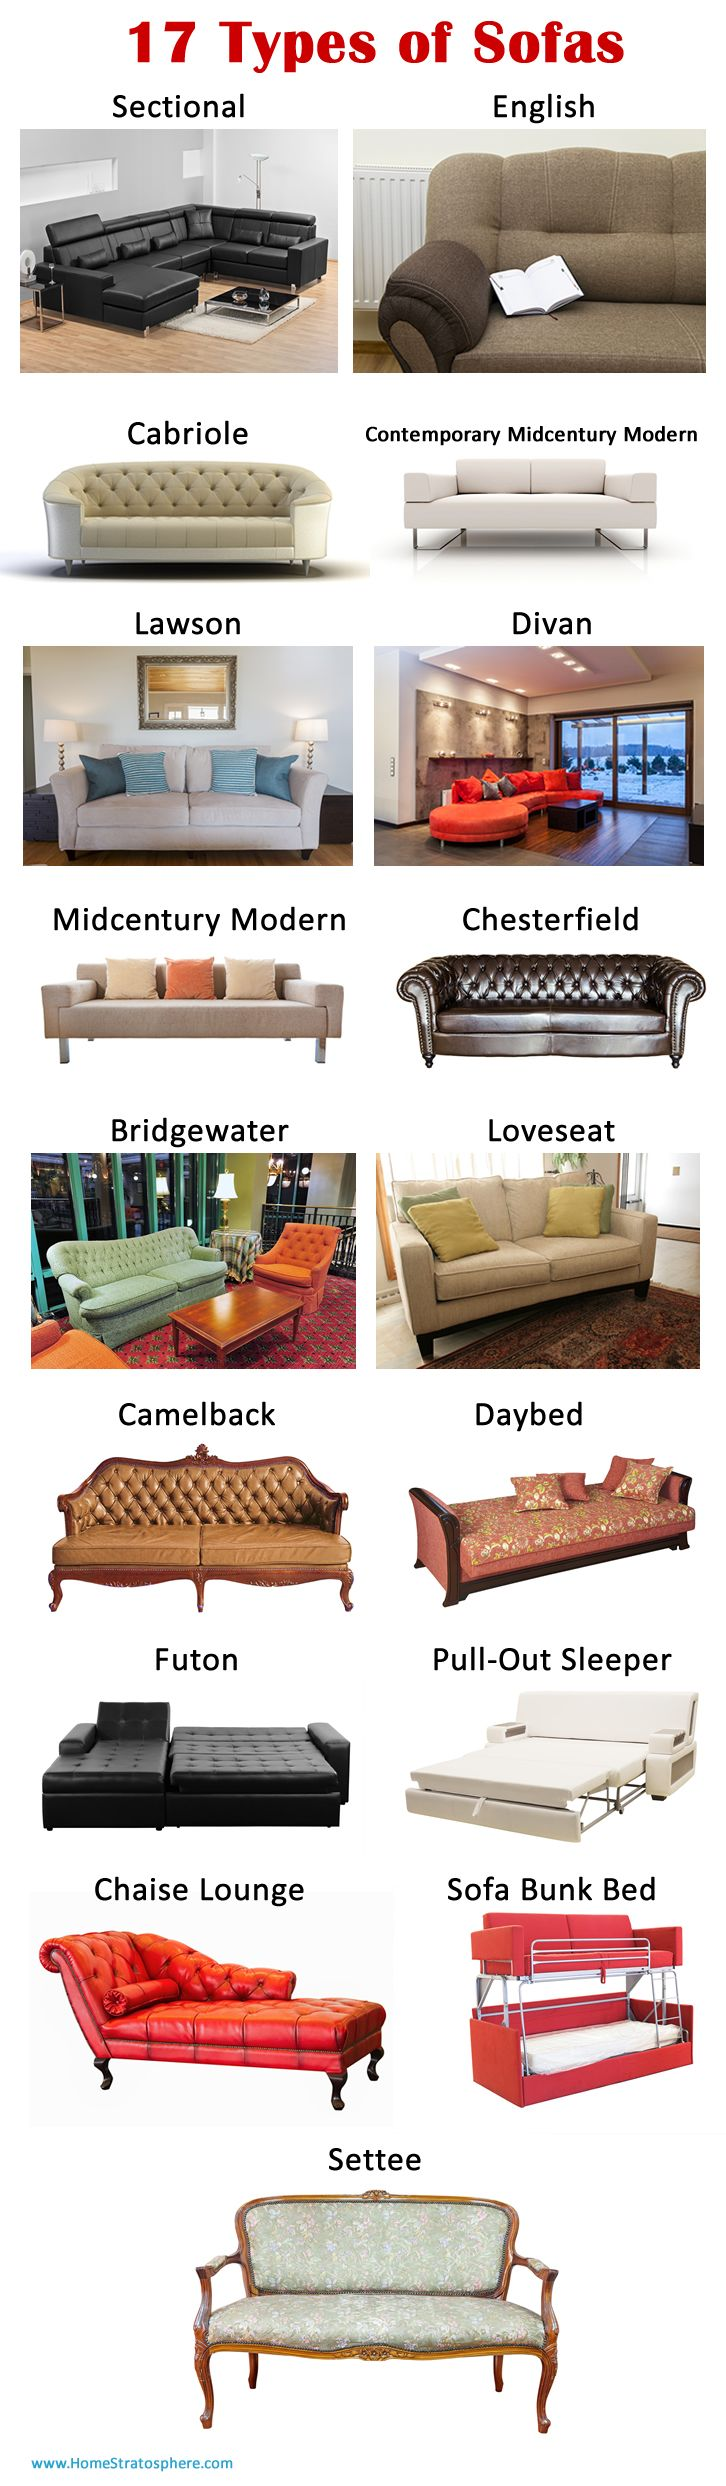 Types Of Sofa For Living Room 22 Types Of Sofas Couches Explained With Pictures Interior